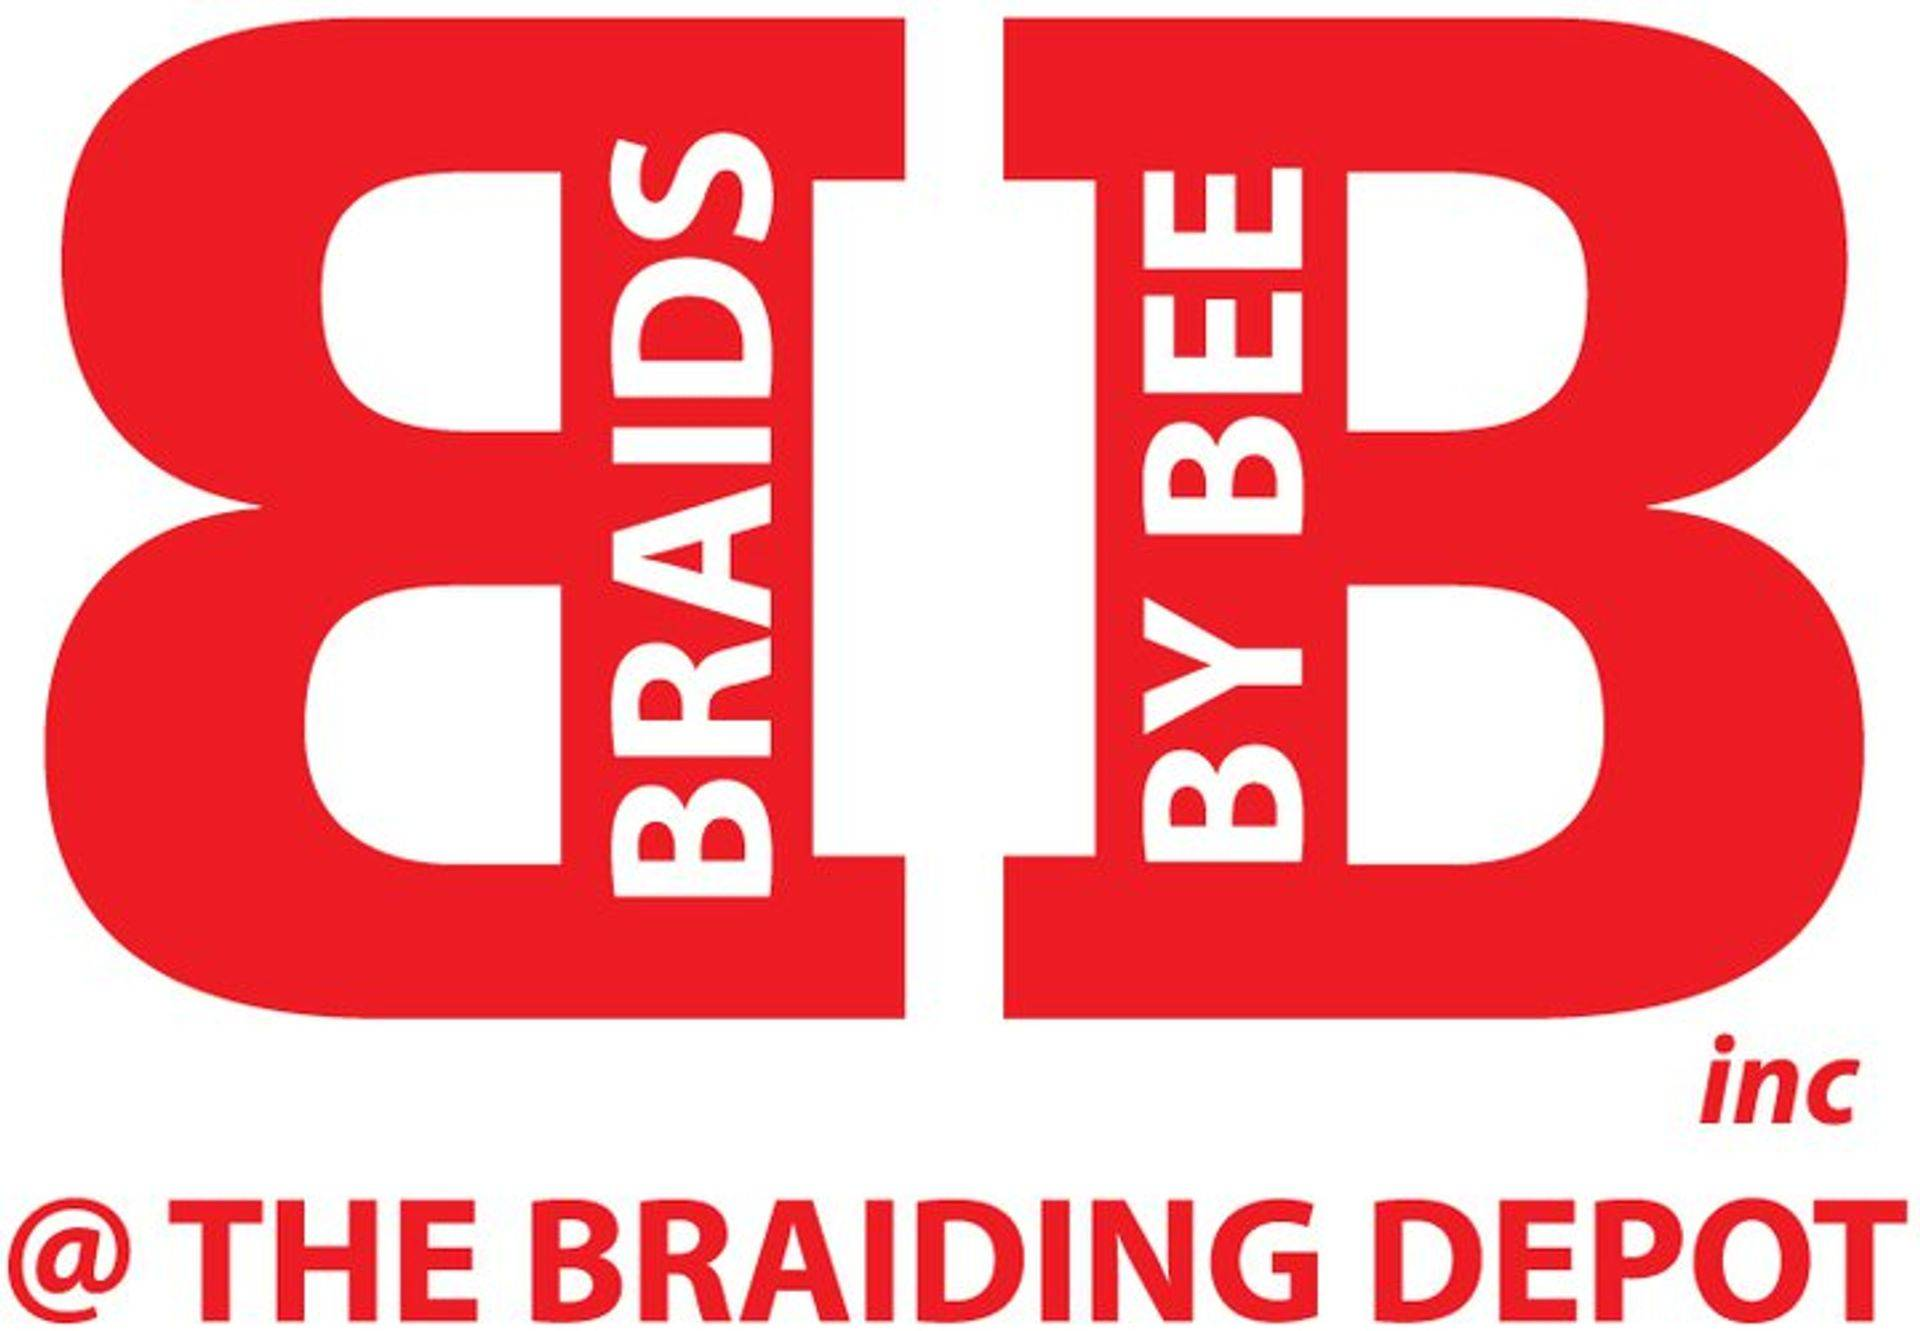 Braids by Bee logo for trademark services done at The Braiding Depot inc.